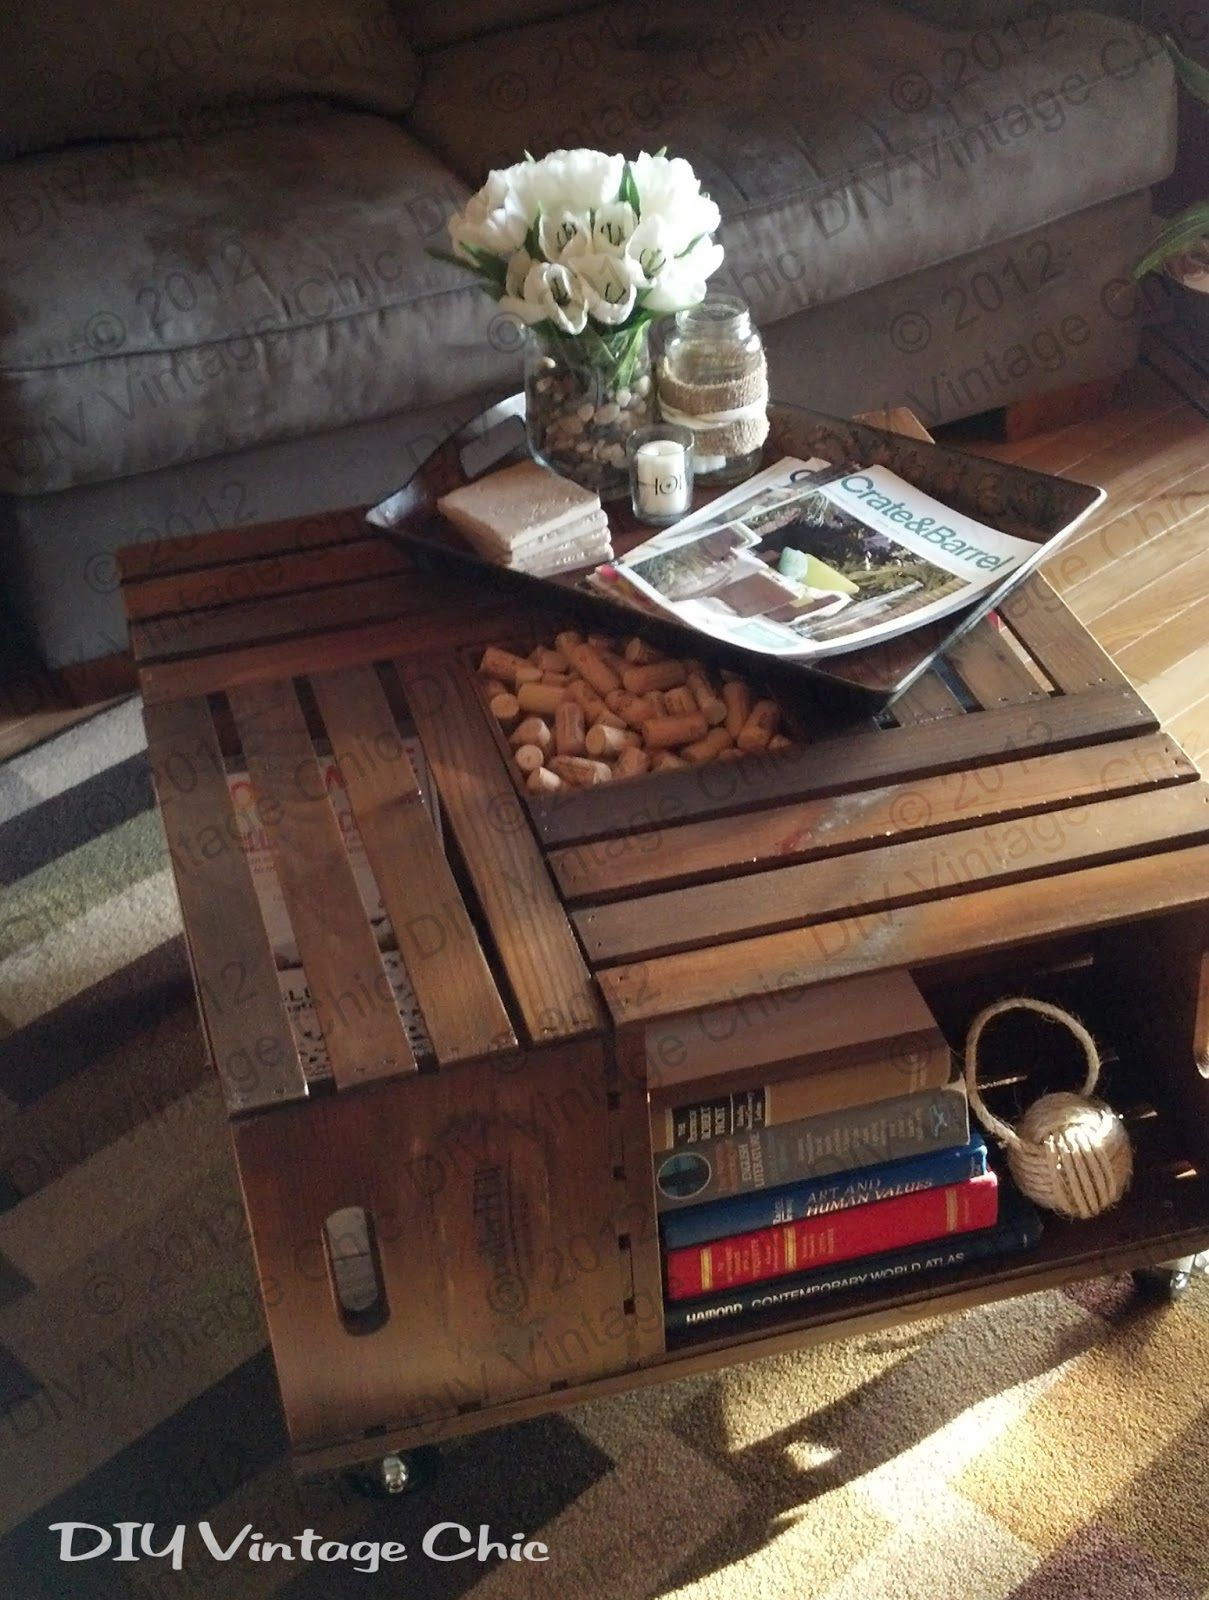 20 Wooden Crate Coffee Table for Sale Used Home fice Furniture